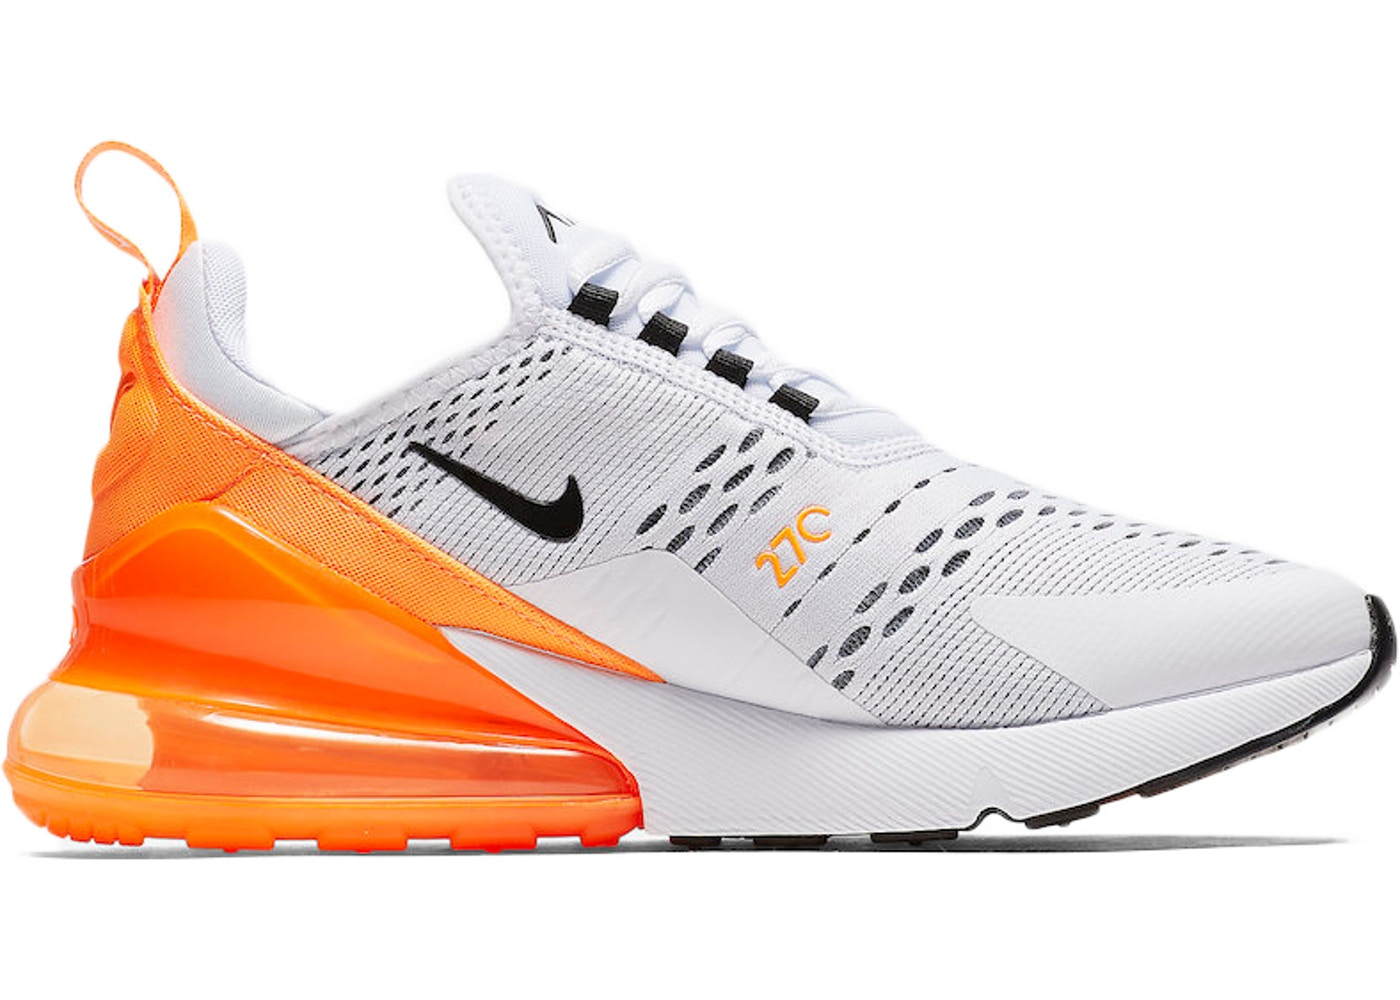 06c187bd Sell. or Ask. Size: 8W. View All Bids. Air Max 270 White Black ...